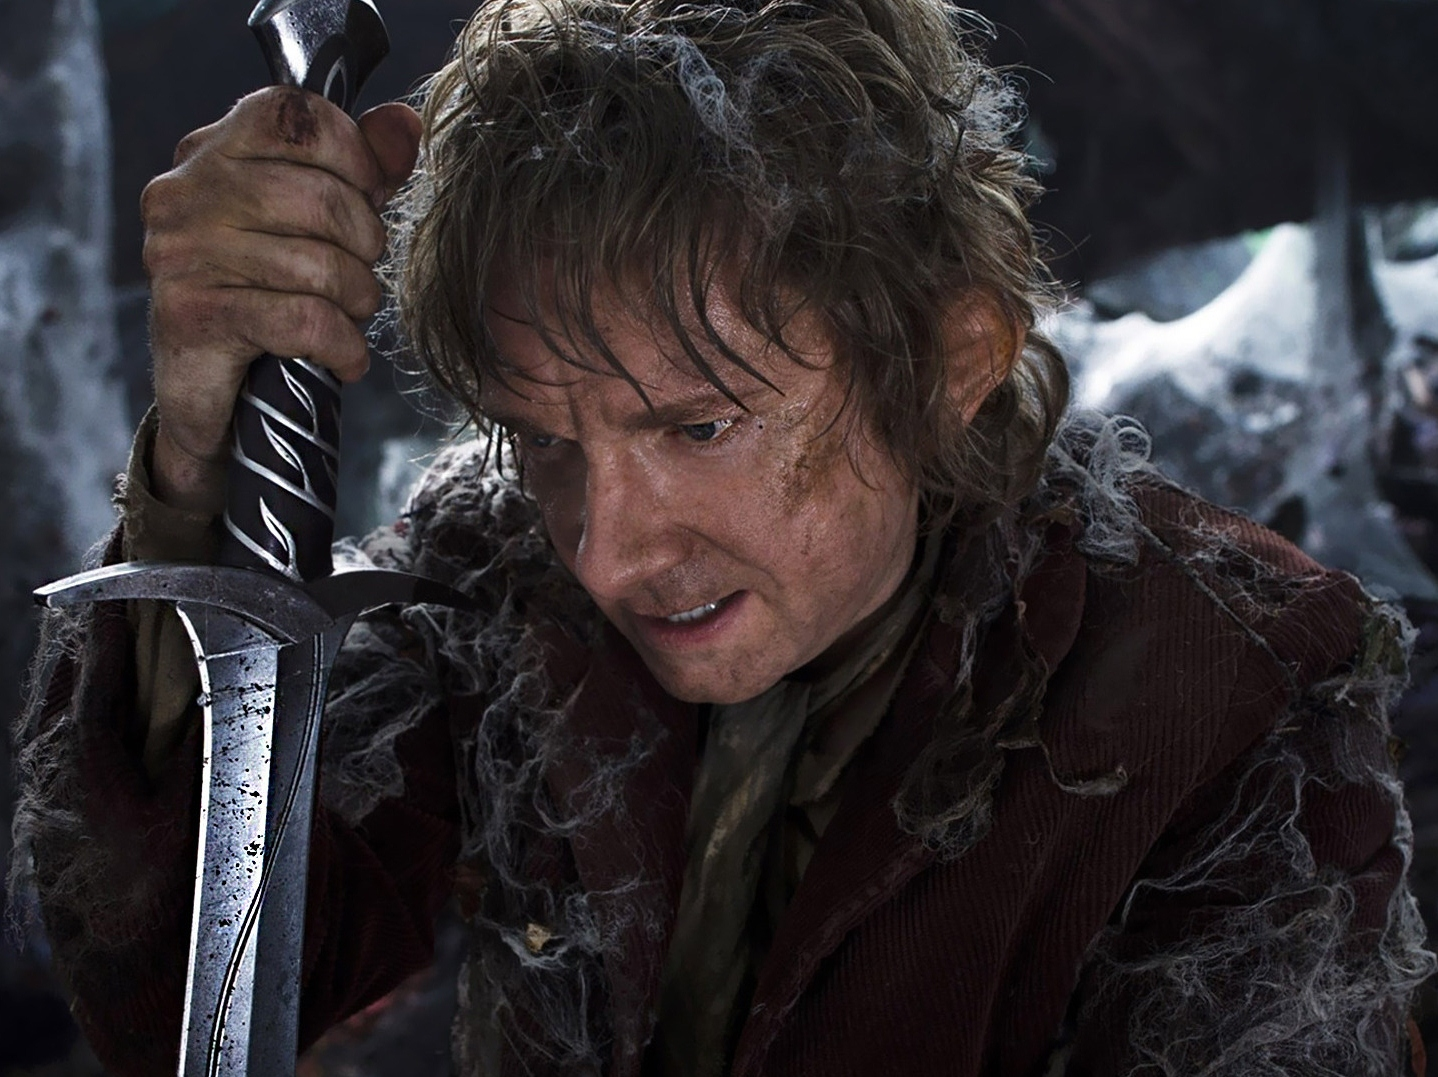 Box Office Predictions: 'Hobbit' Looks To End 2012 on Top